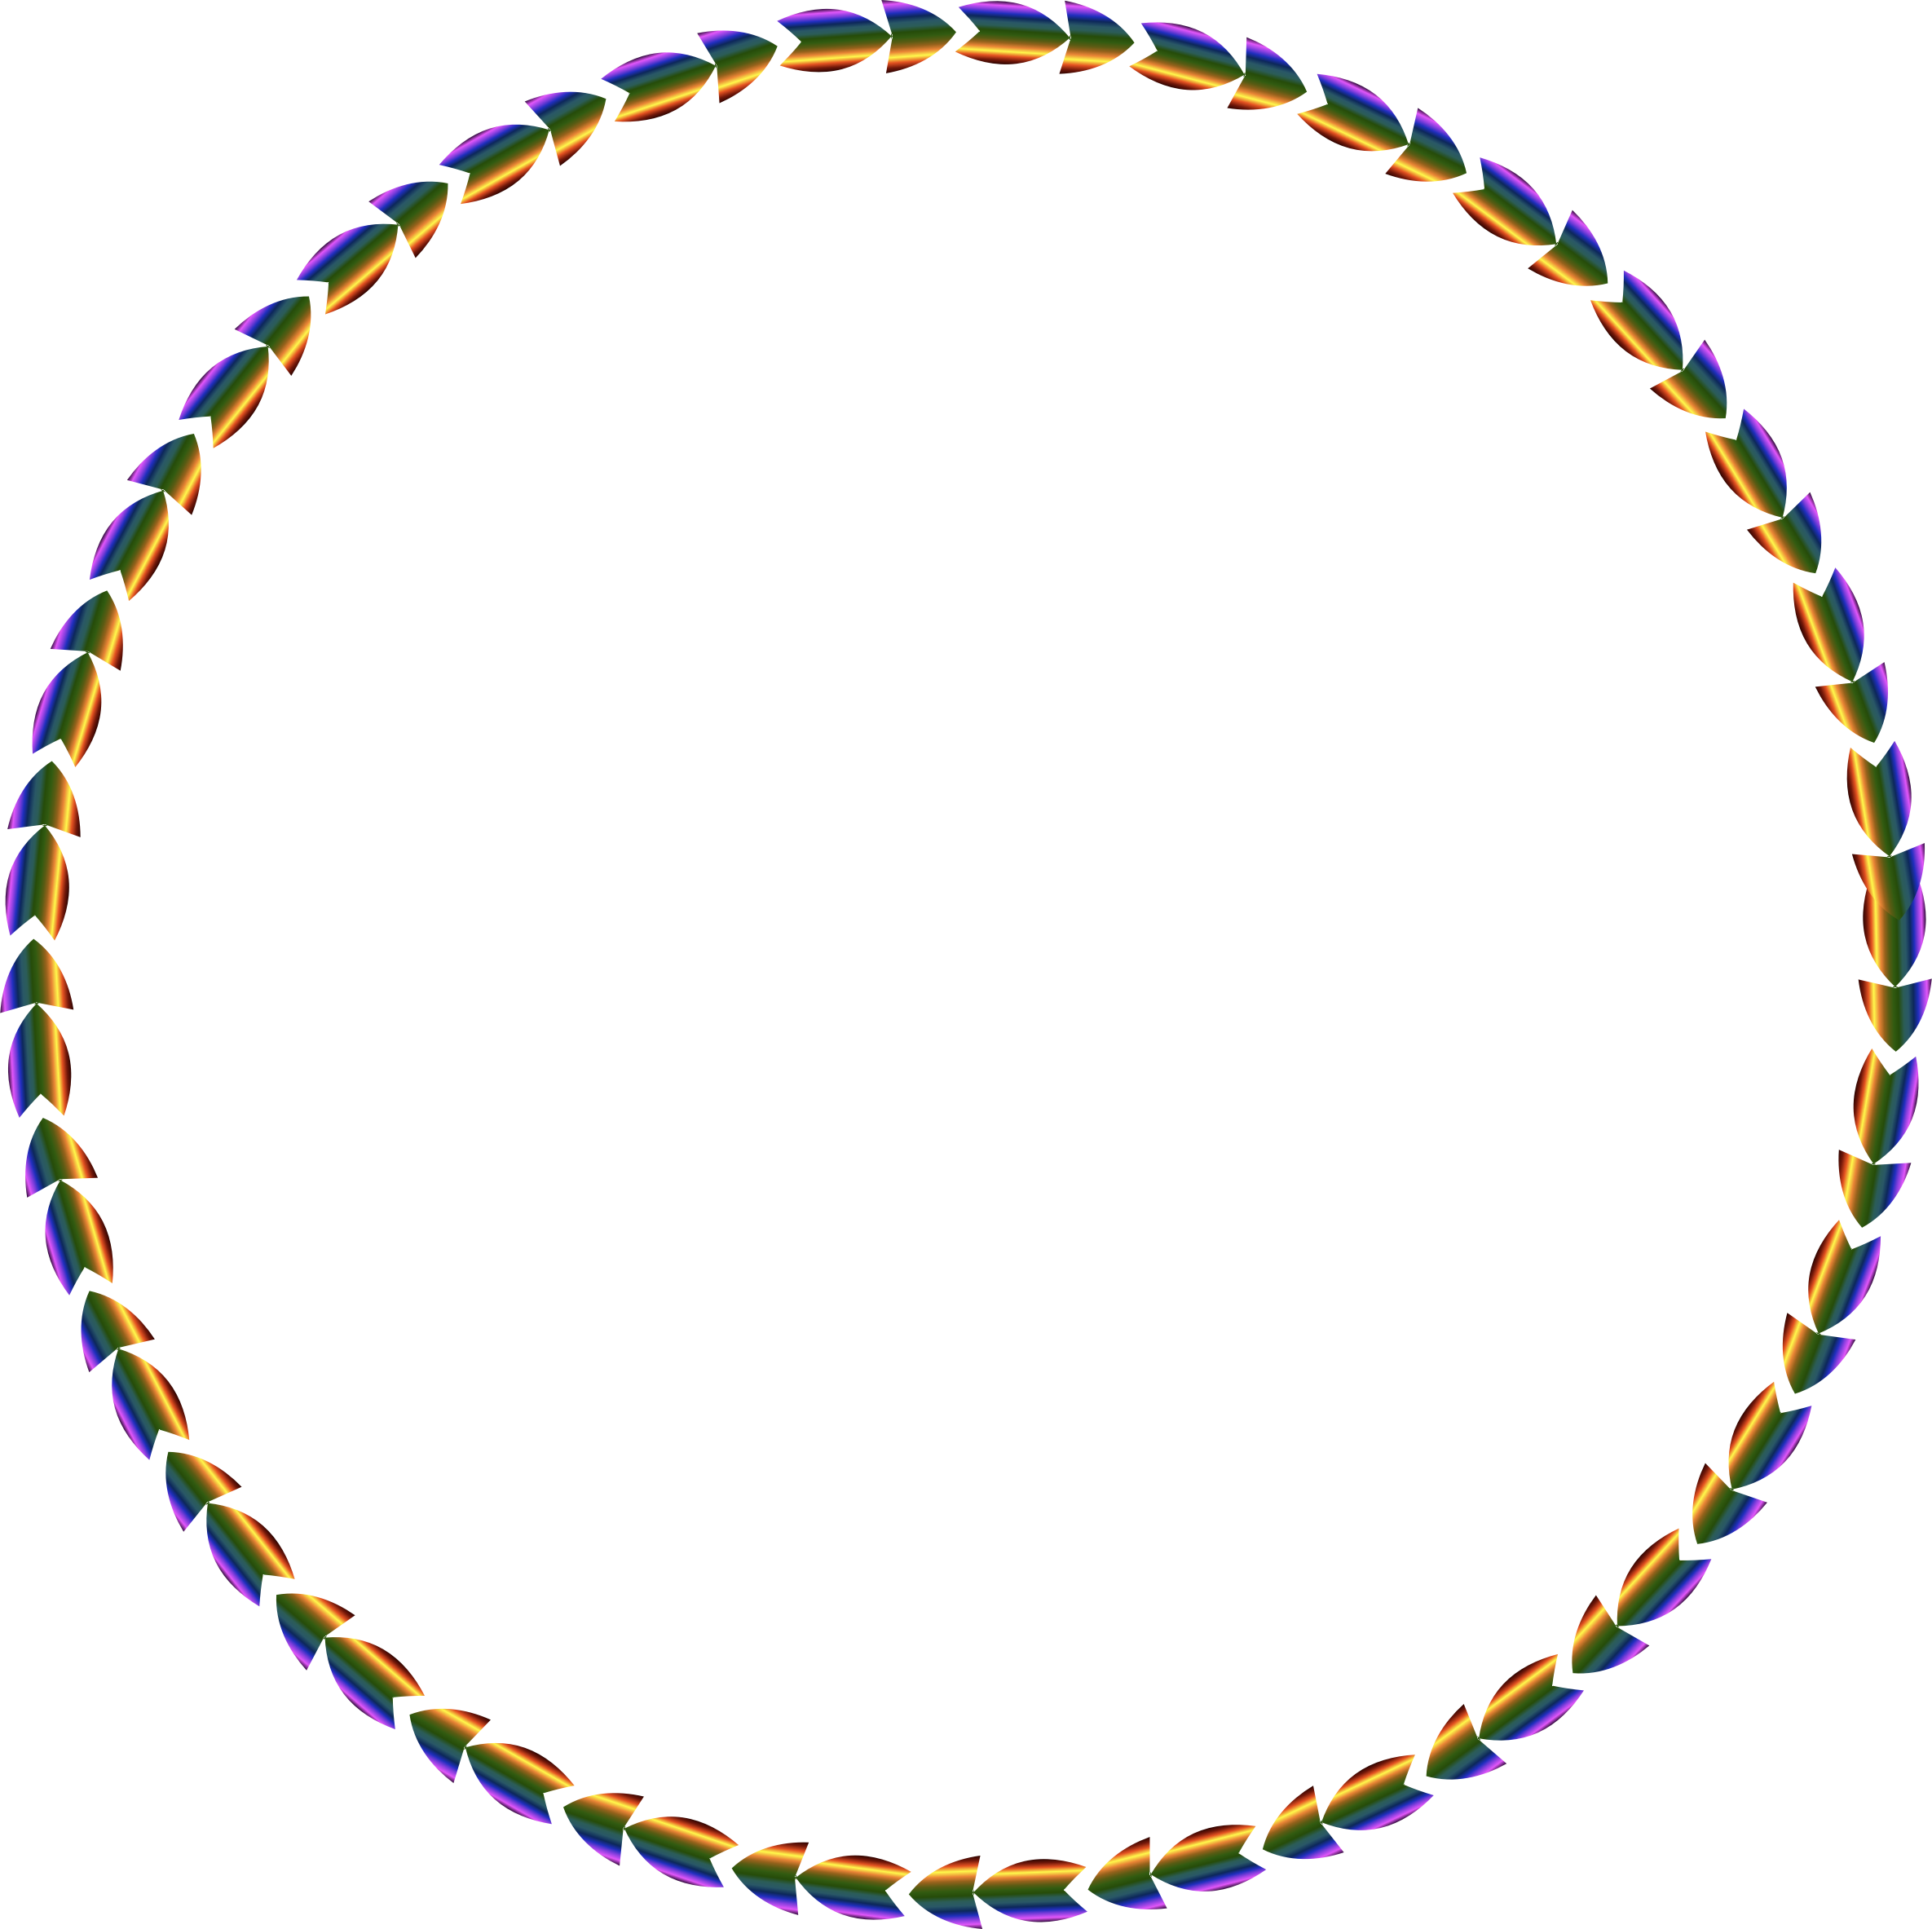 Colorful Direction Circle by GDJ